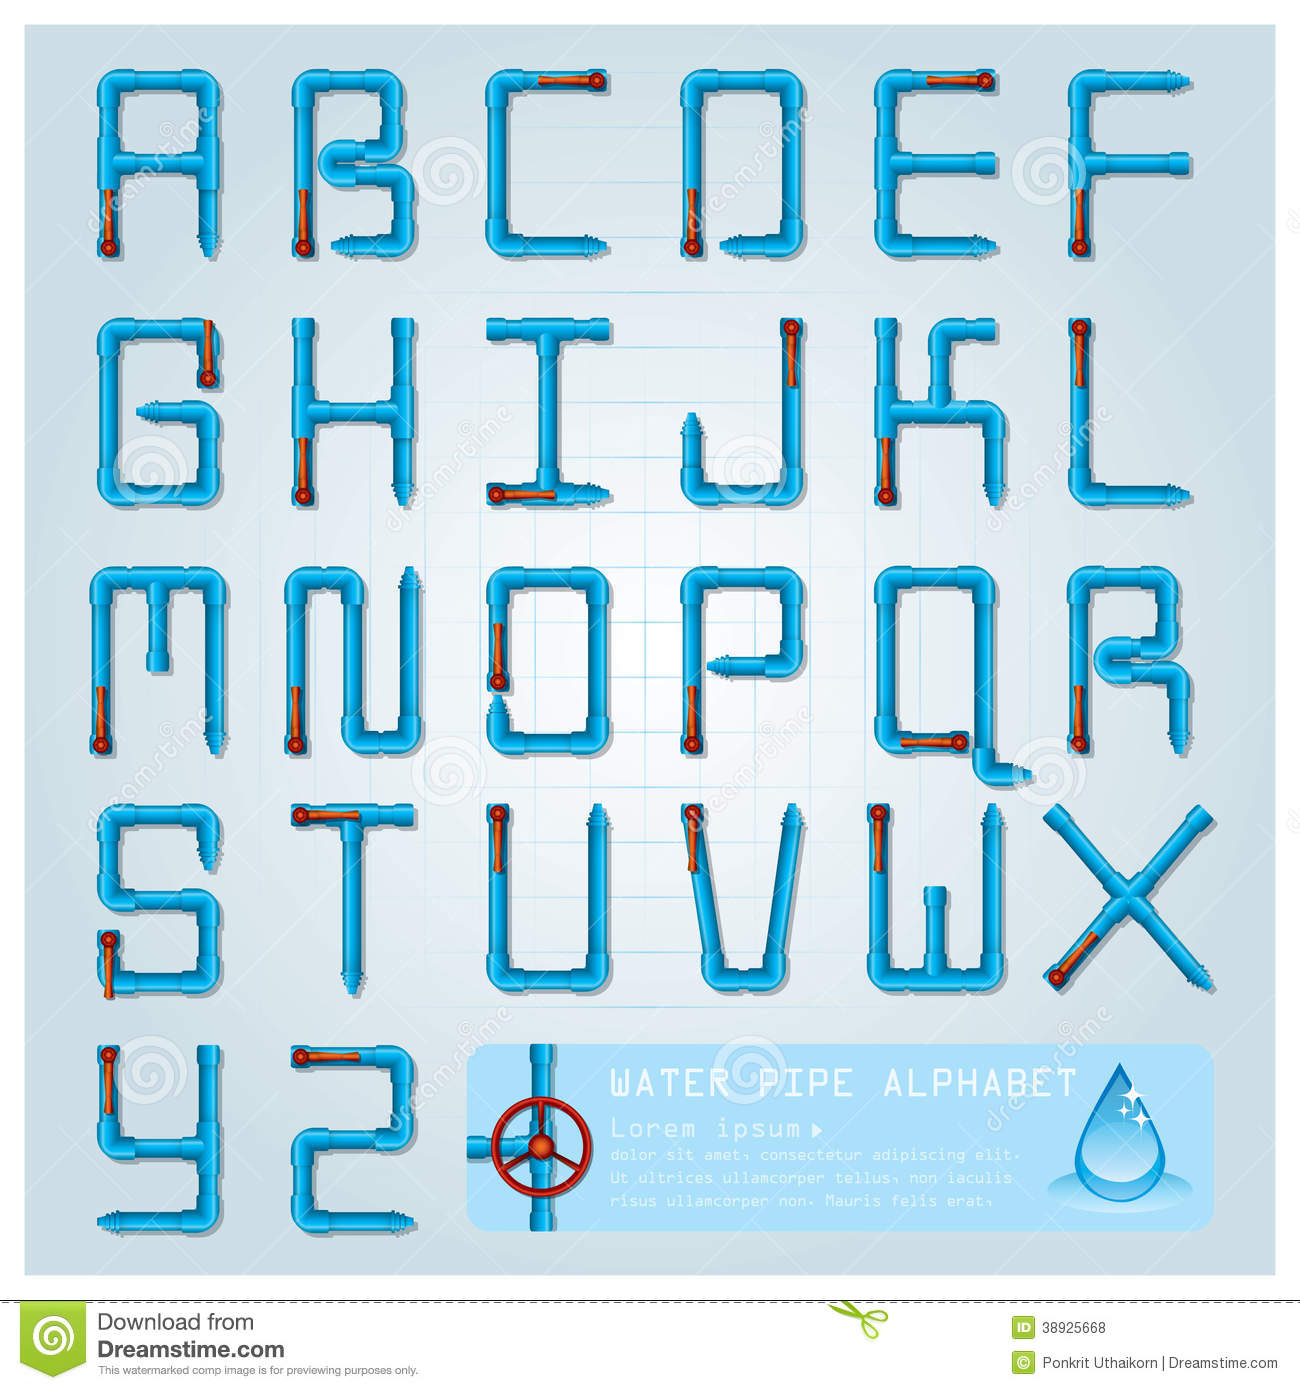 Water Pipe Alphabet Font Character Stock Vector